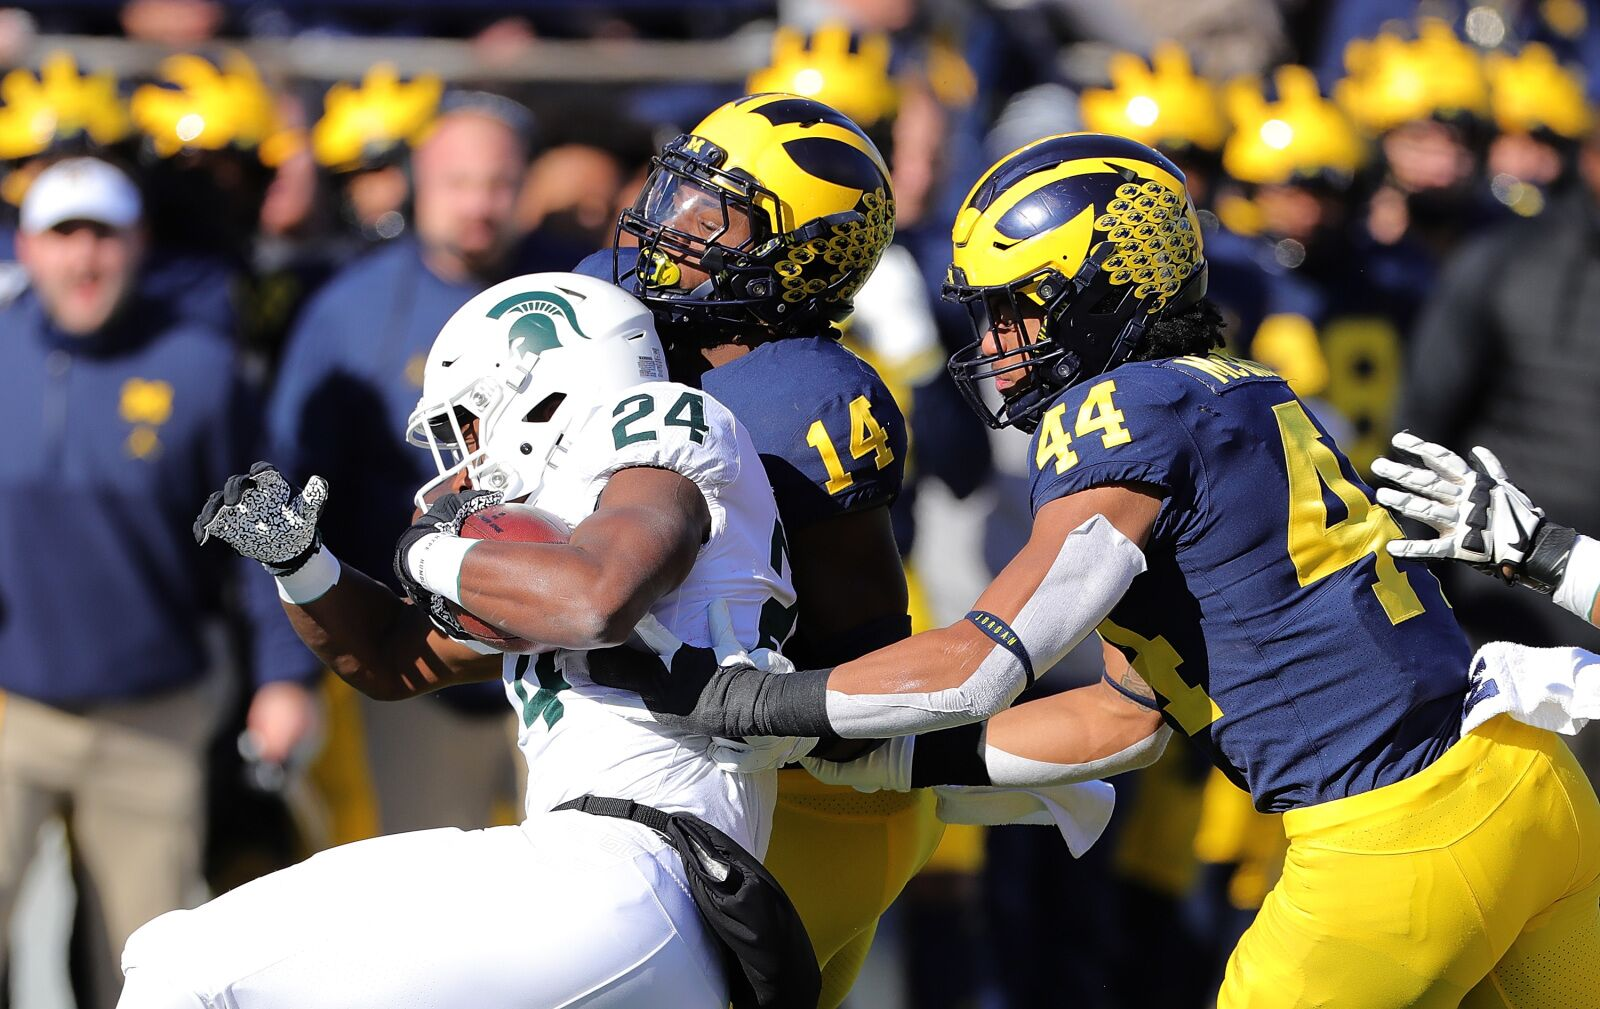 Michigan State Football: 3 takeaways from ugly loss at Michigan